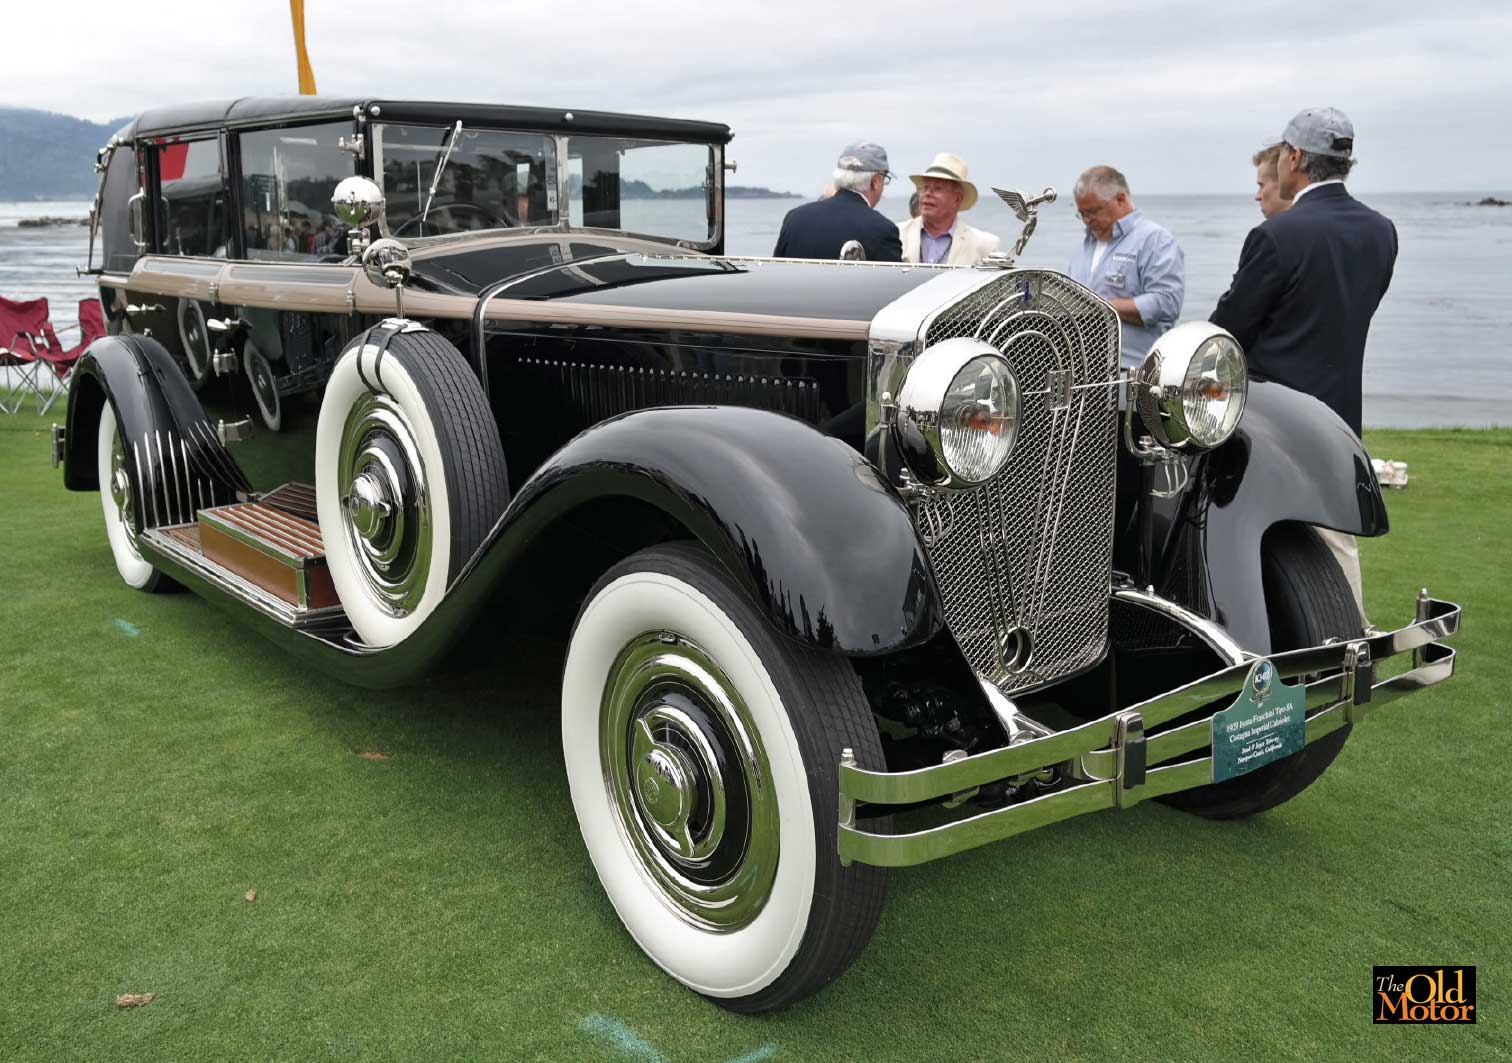 isotta fraschini stars at the 2017 pebble beach concours d elegance